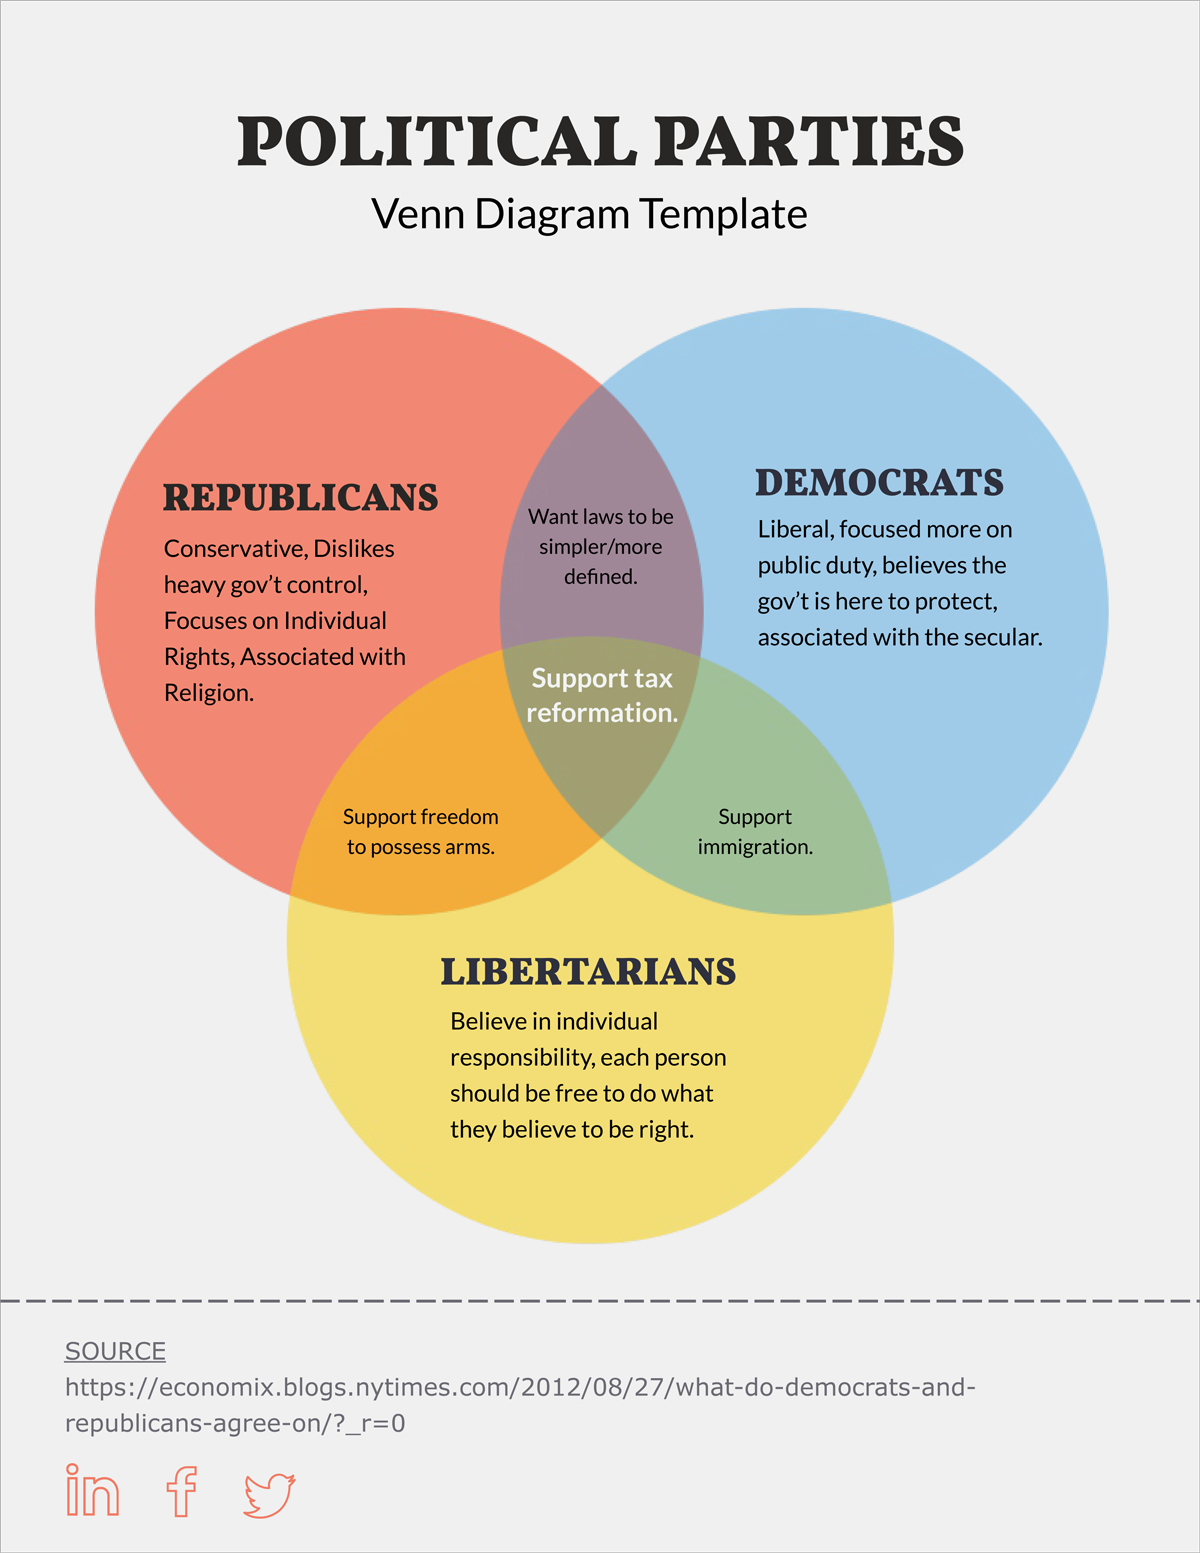 Free venn diagram template edit online and download visual political parties three circle venn diagram template pooptronica